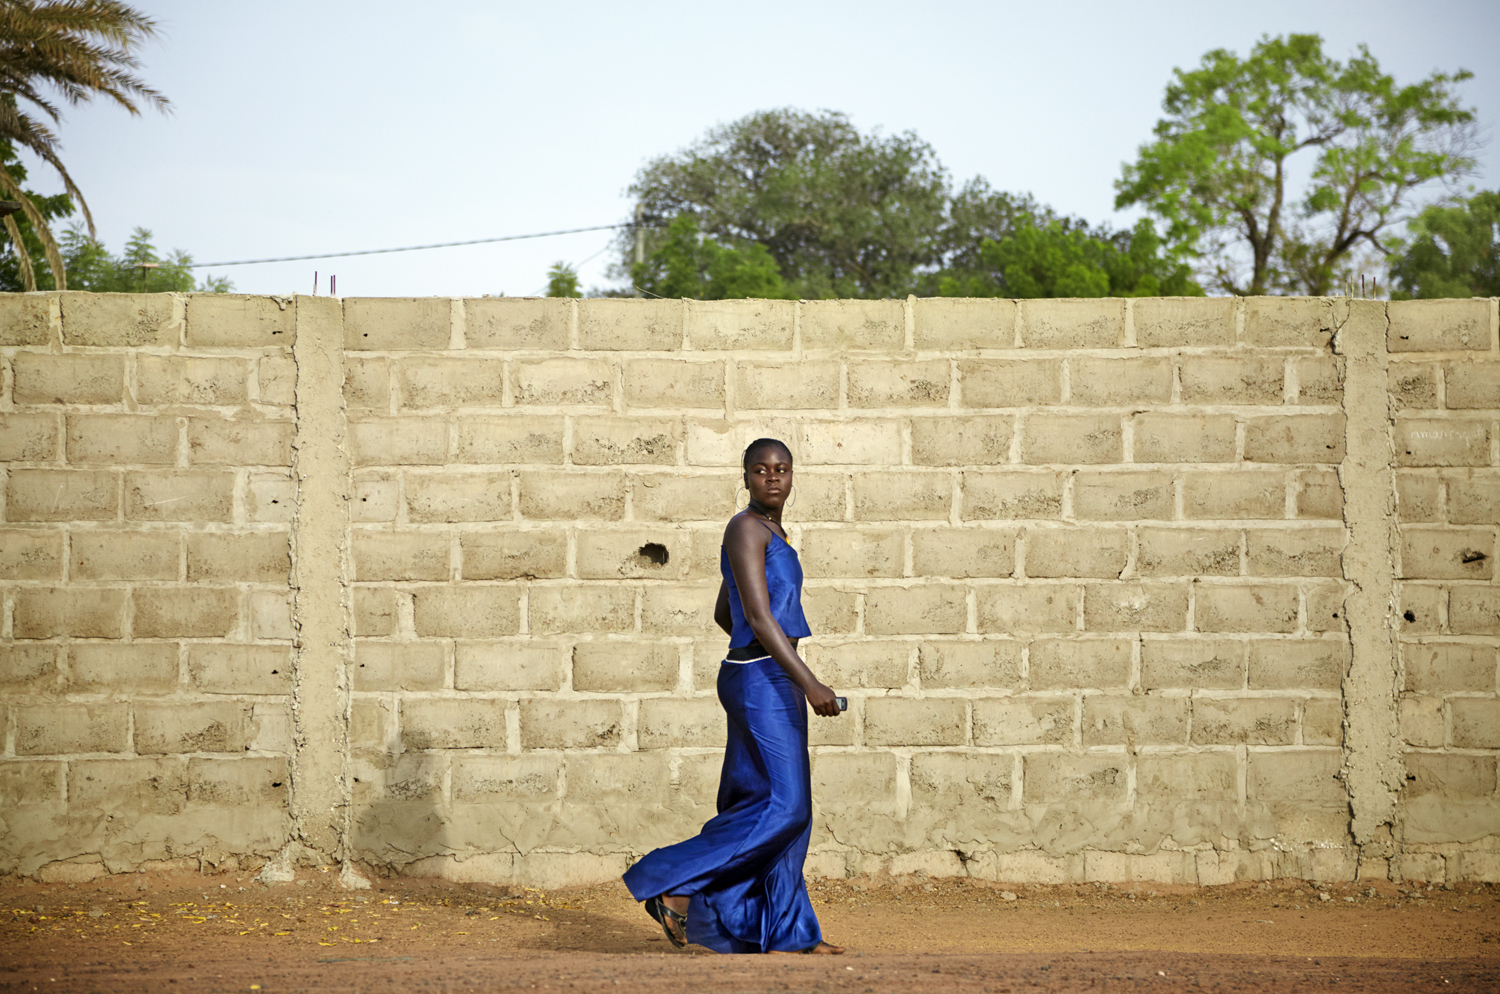 Blue Dress , Senegal 2011  Archival Pigment Print 22 x 33, Edition of 7 (1-3 available) $2200  The road was endless and there was no time to stop. Hour after hour, photogenic moments passed before my eyes and a knot grew in my stomach over not being able to capture what unfolded before me. I then decided to start shooting through the moving car window when this woman in blue appeared.